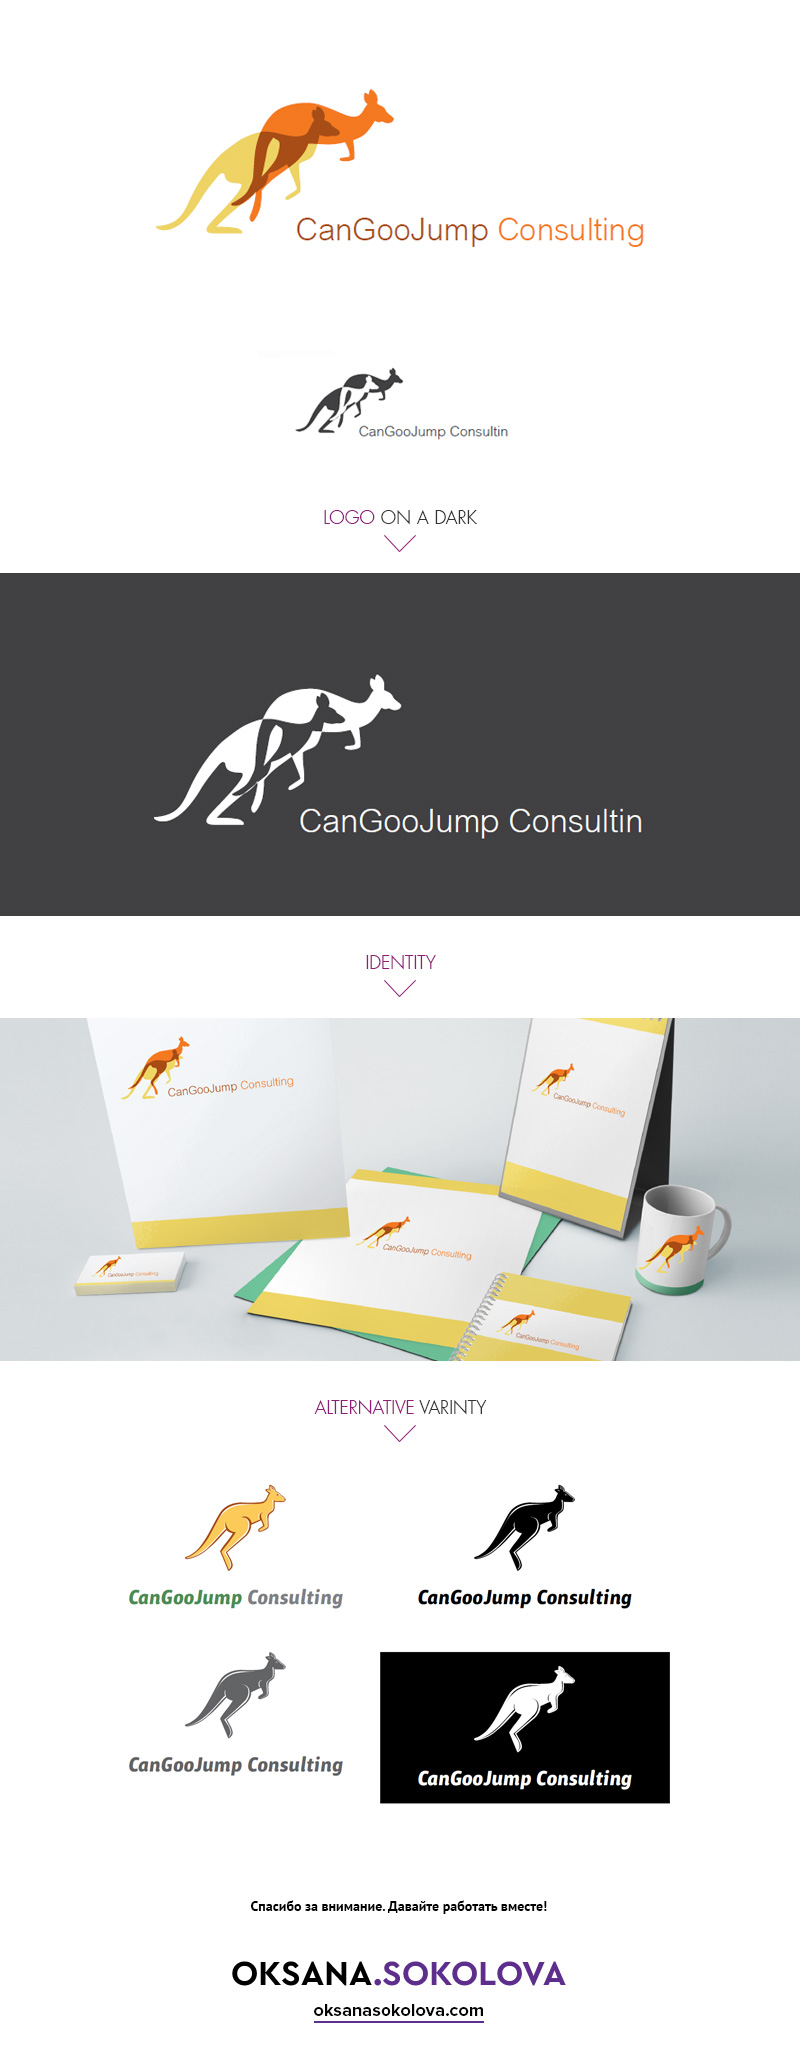 CanGooJump Consulting